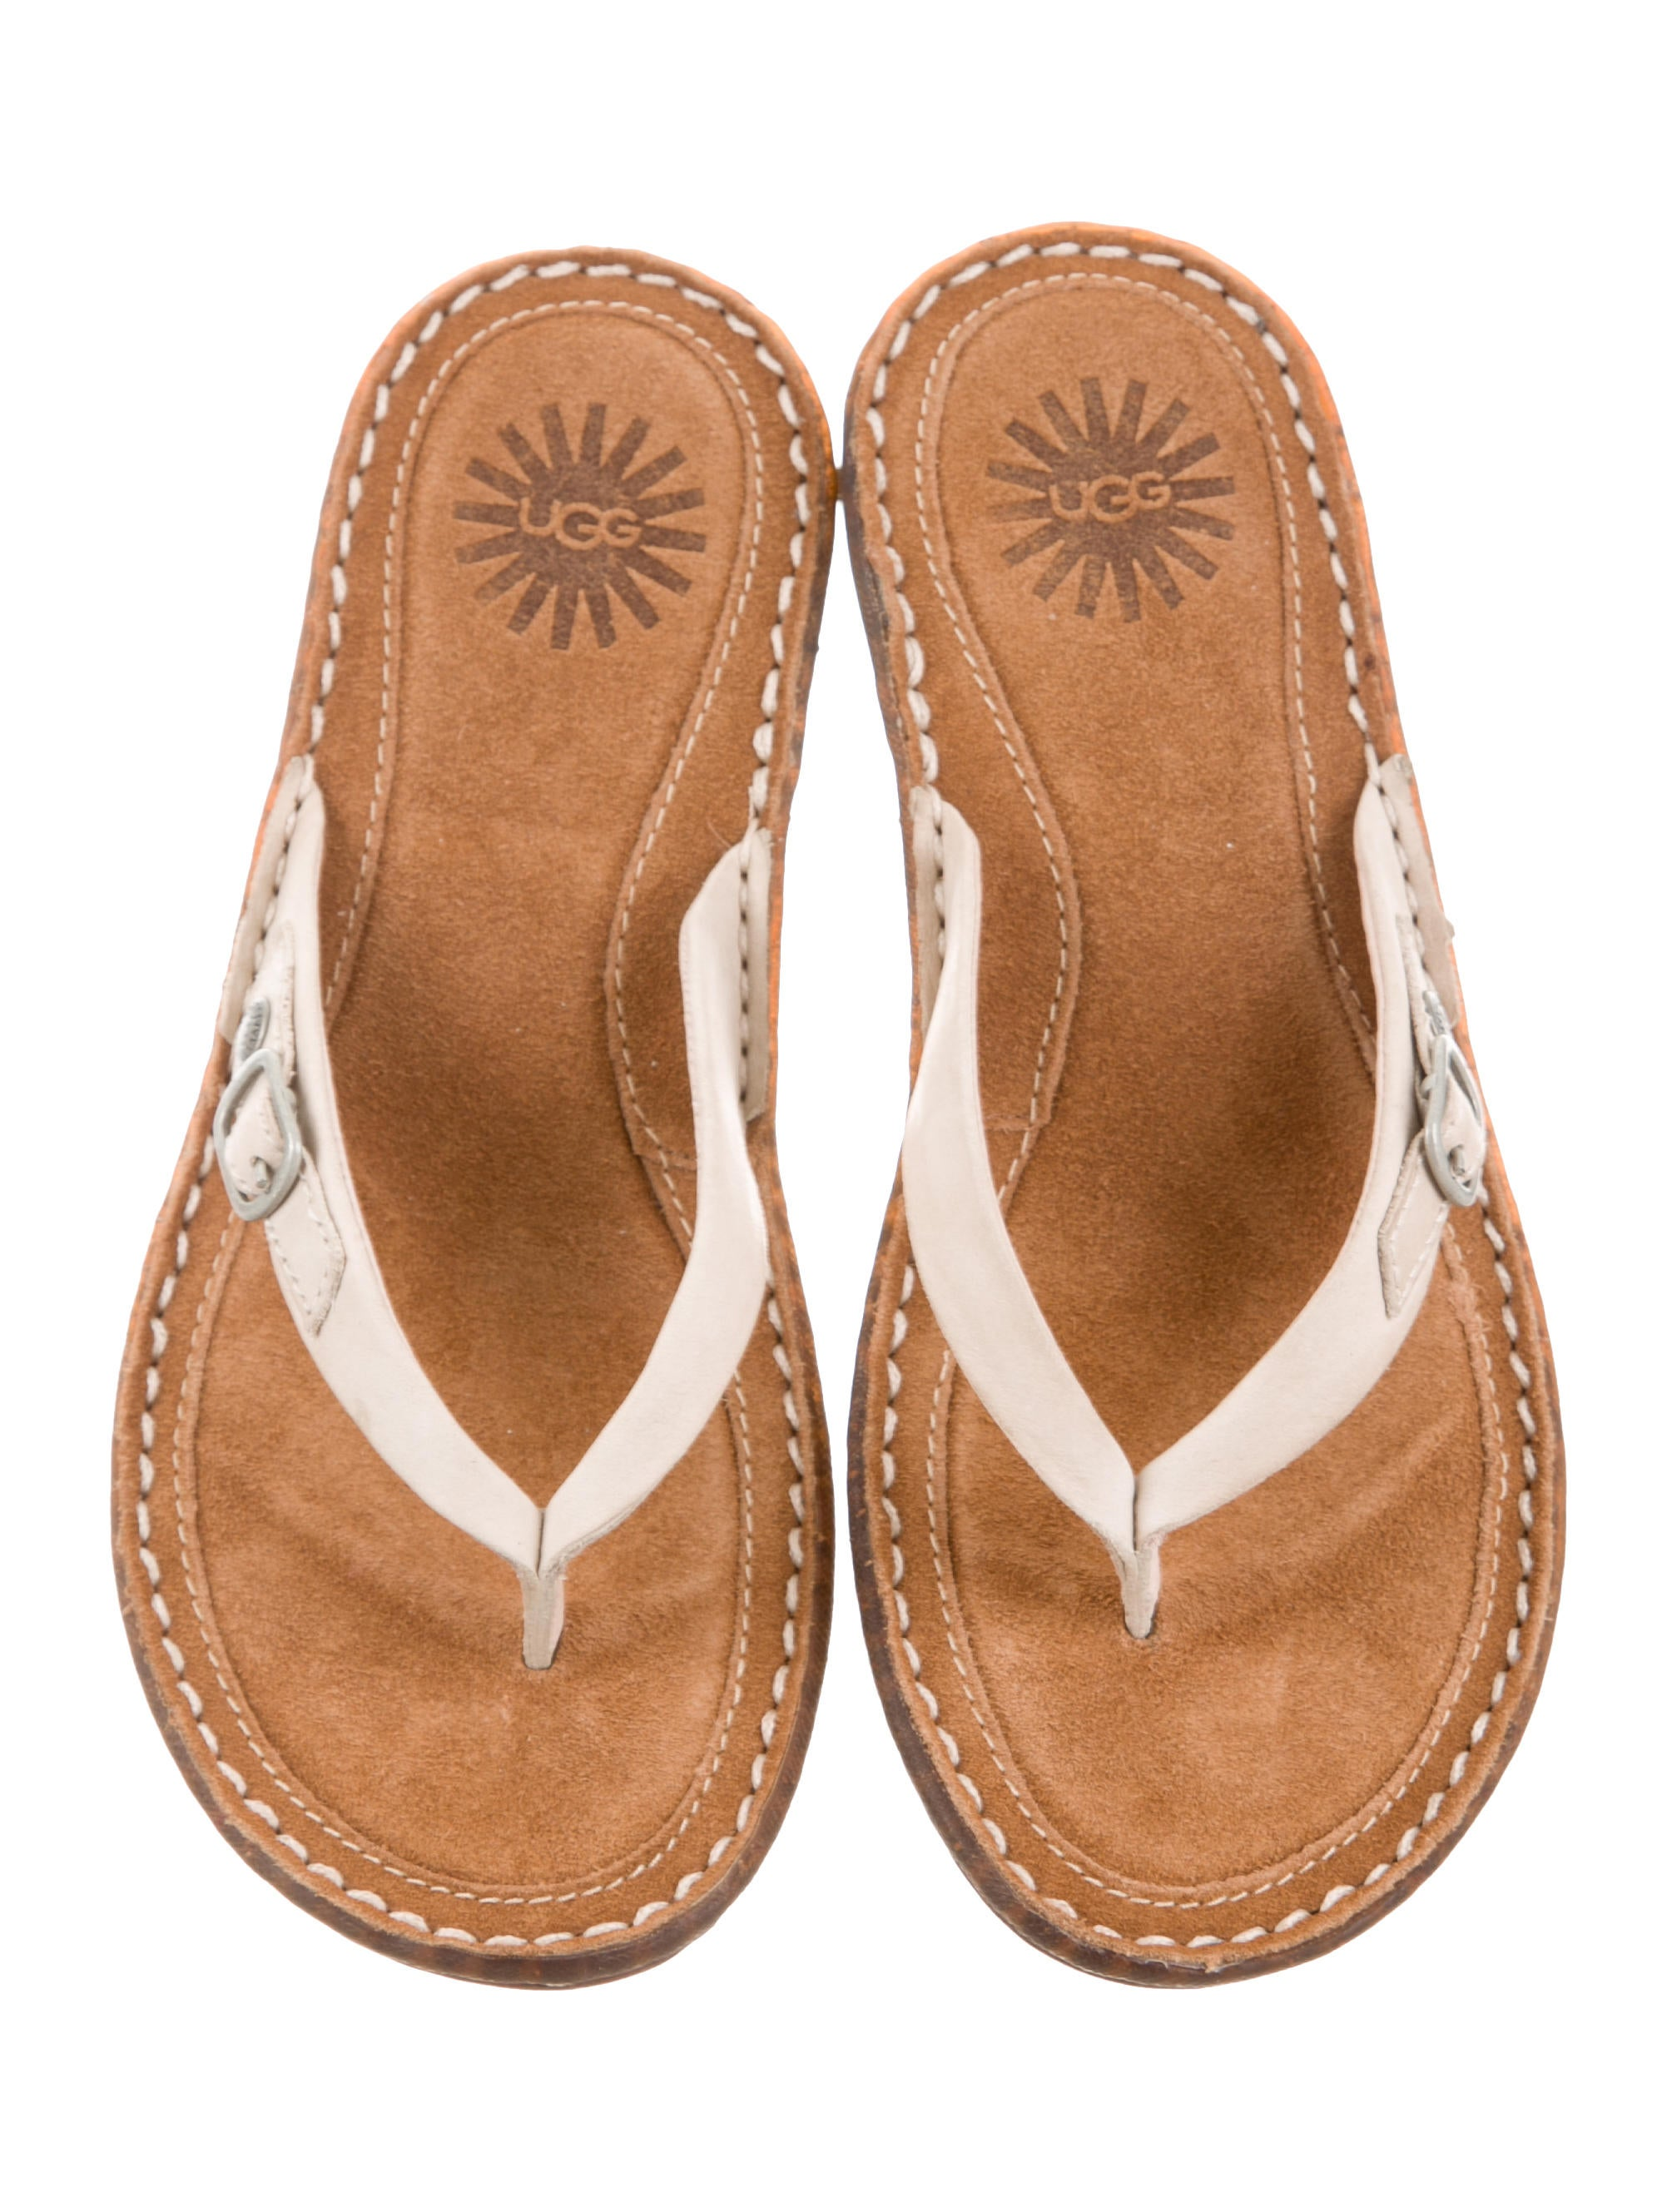 outlet wiki UGG Australia Kamiko Thong Sandals w/ Tags low shipping fee online bdjklaY7